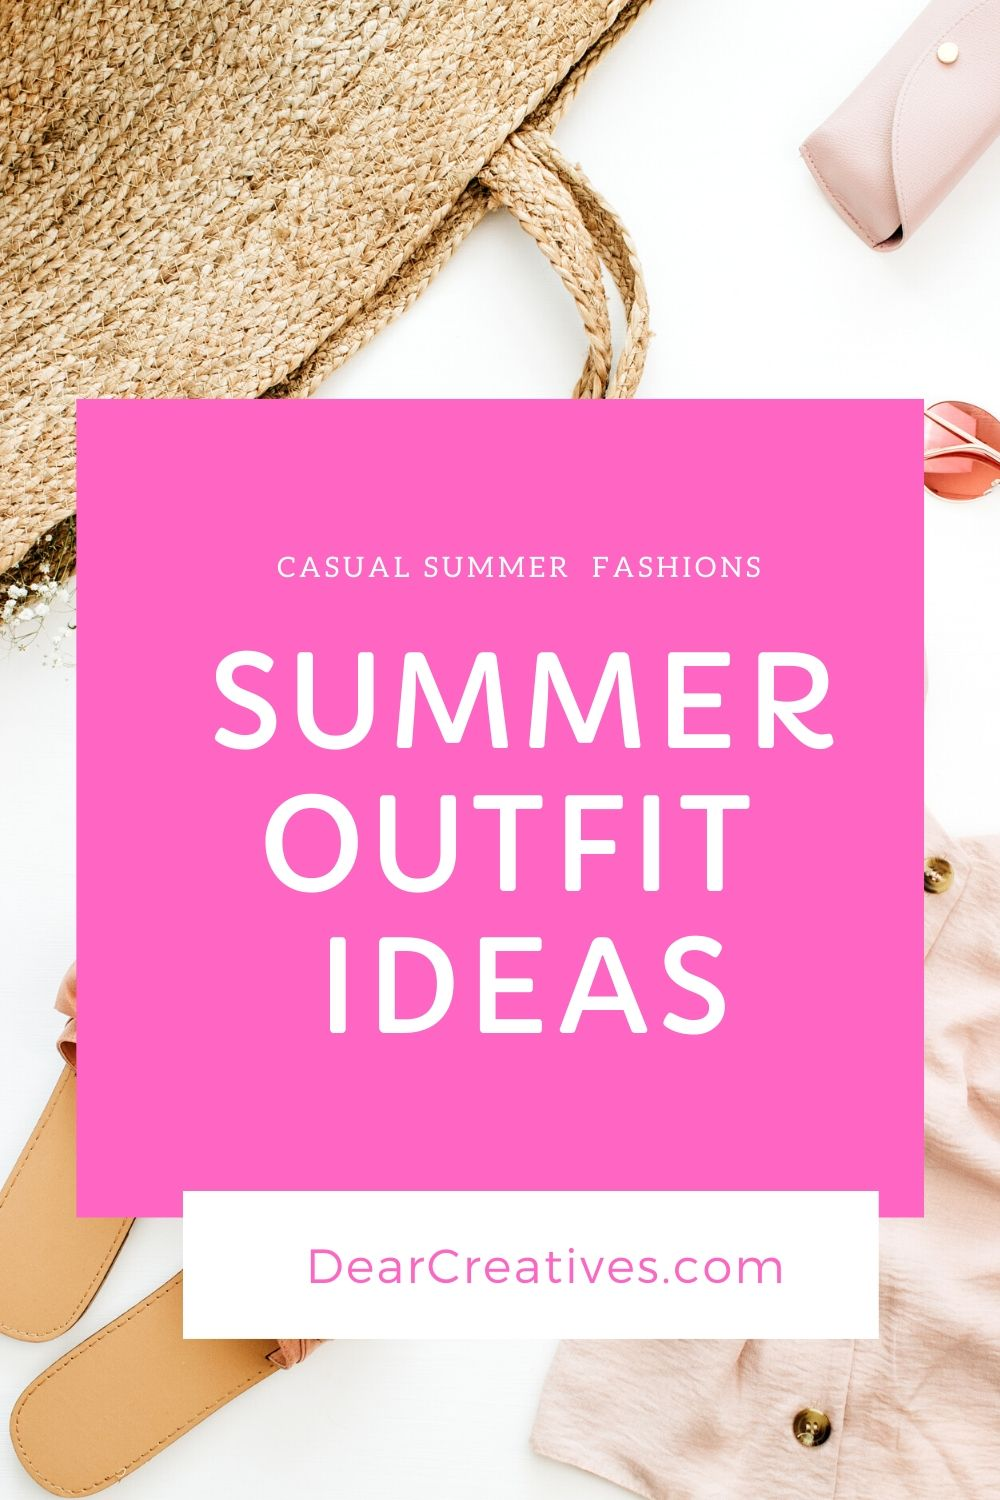 Summer Outfit Ideas To Wear Right Now!